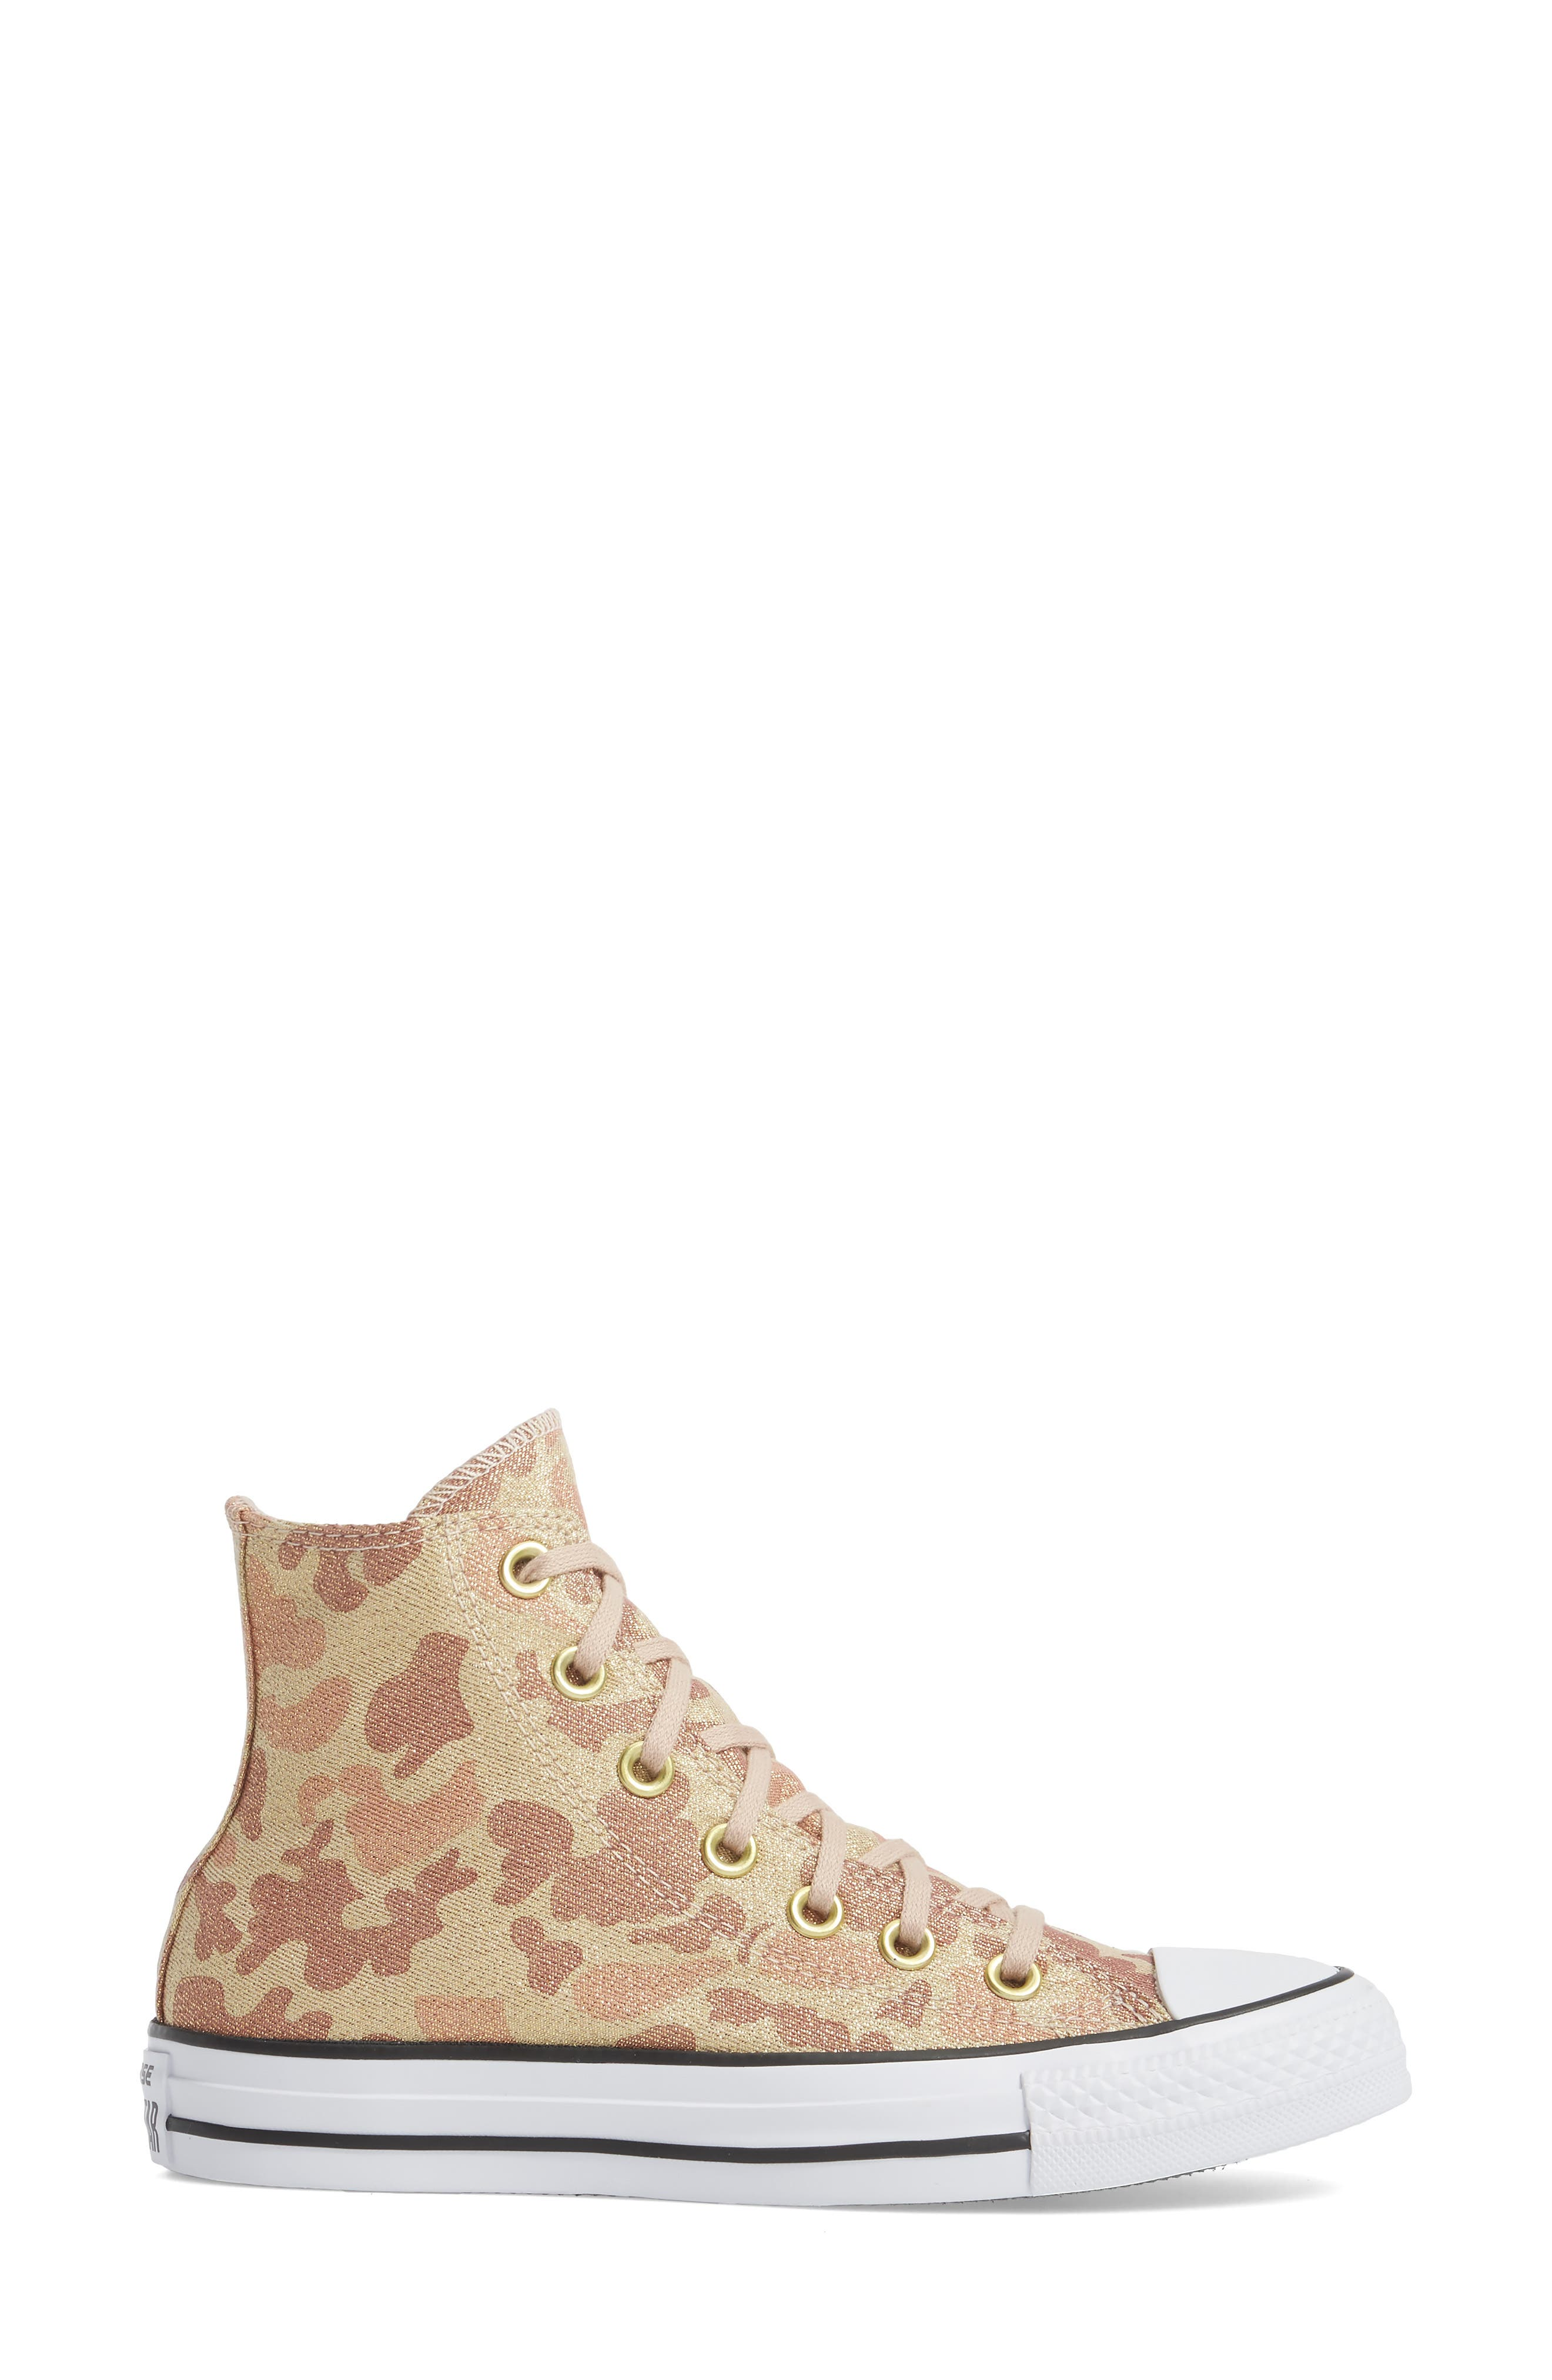 Chuck Taylor<sup>®</sup> All Star<sup>®</sup> High Top Sneaker,                             Alternate thumbnail 3, color,                             Particle Beige